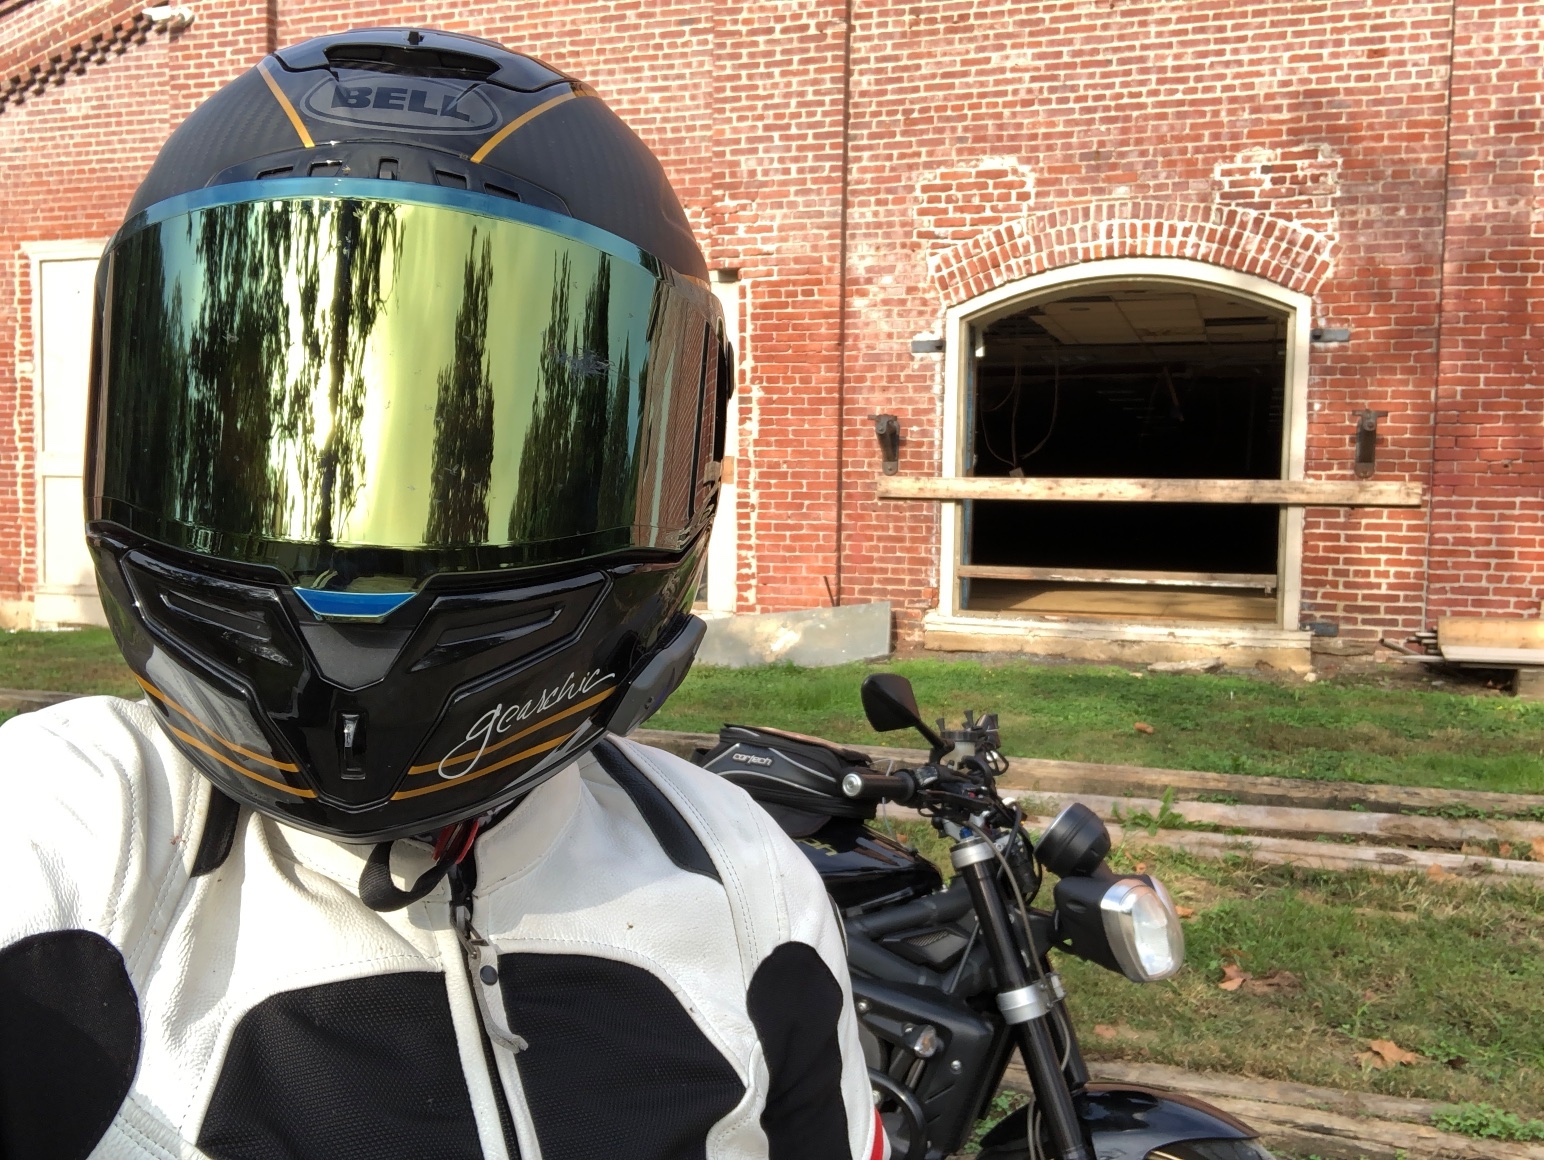 Goldie and I, out and about on the backroads of Delaware for a short afternoon ride. This helmet makes me so vain!